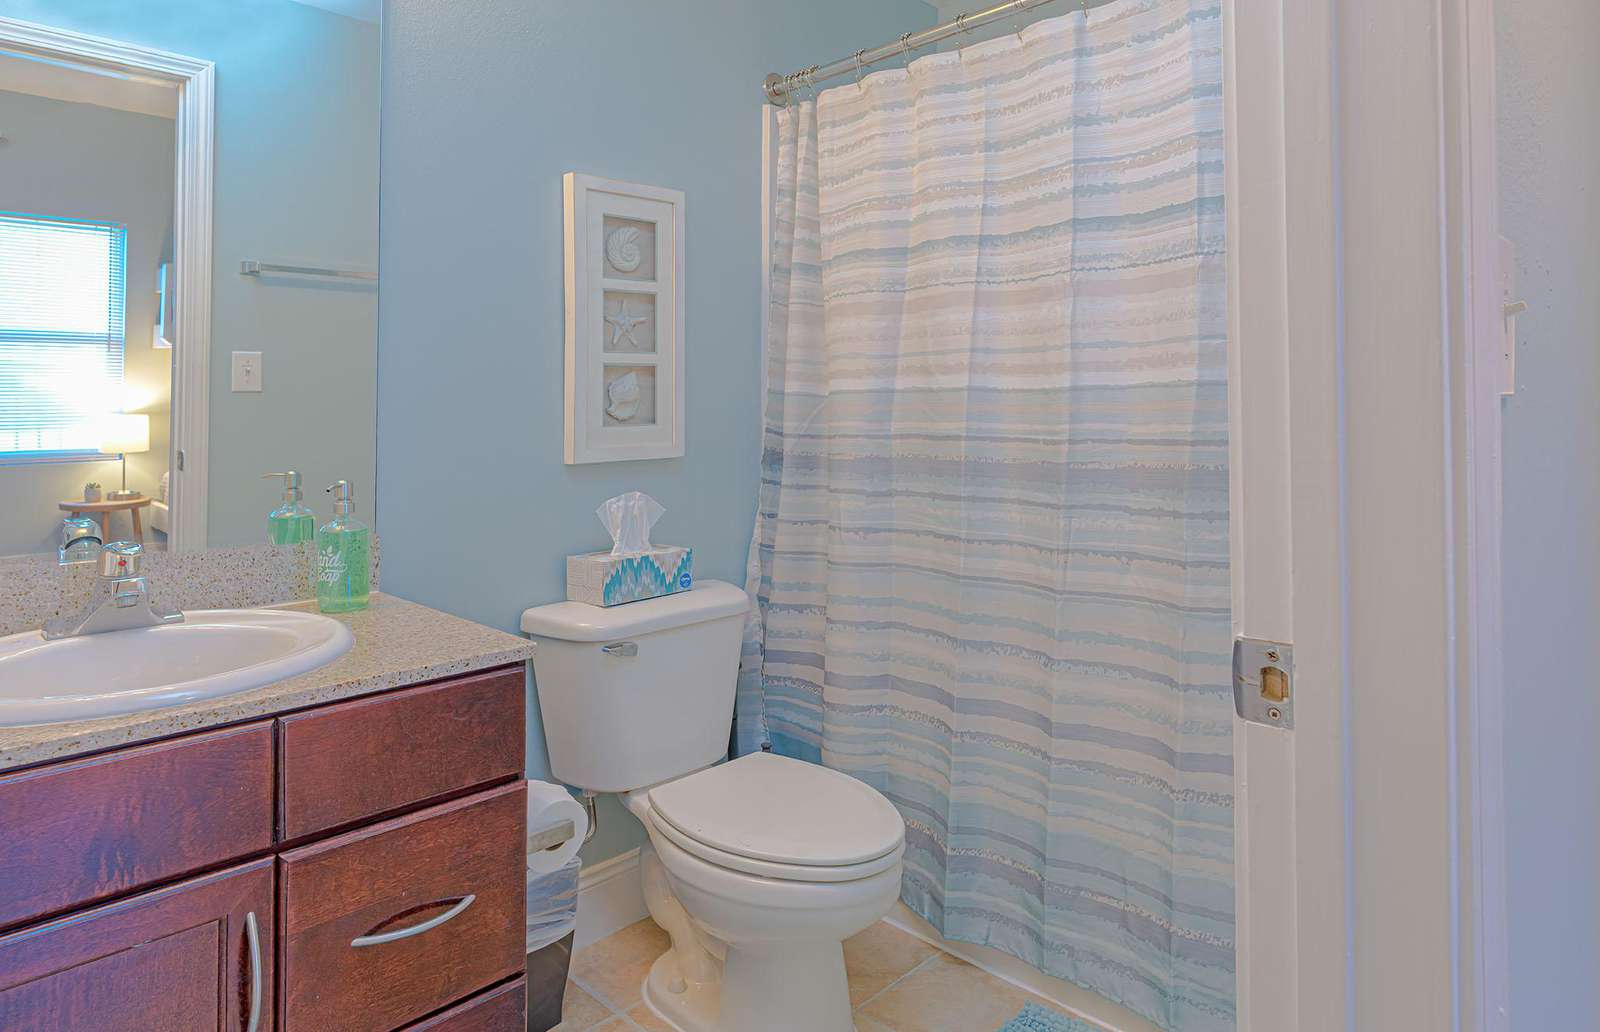 The full guest bath is stocked with basic linen!